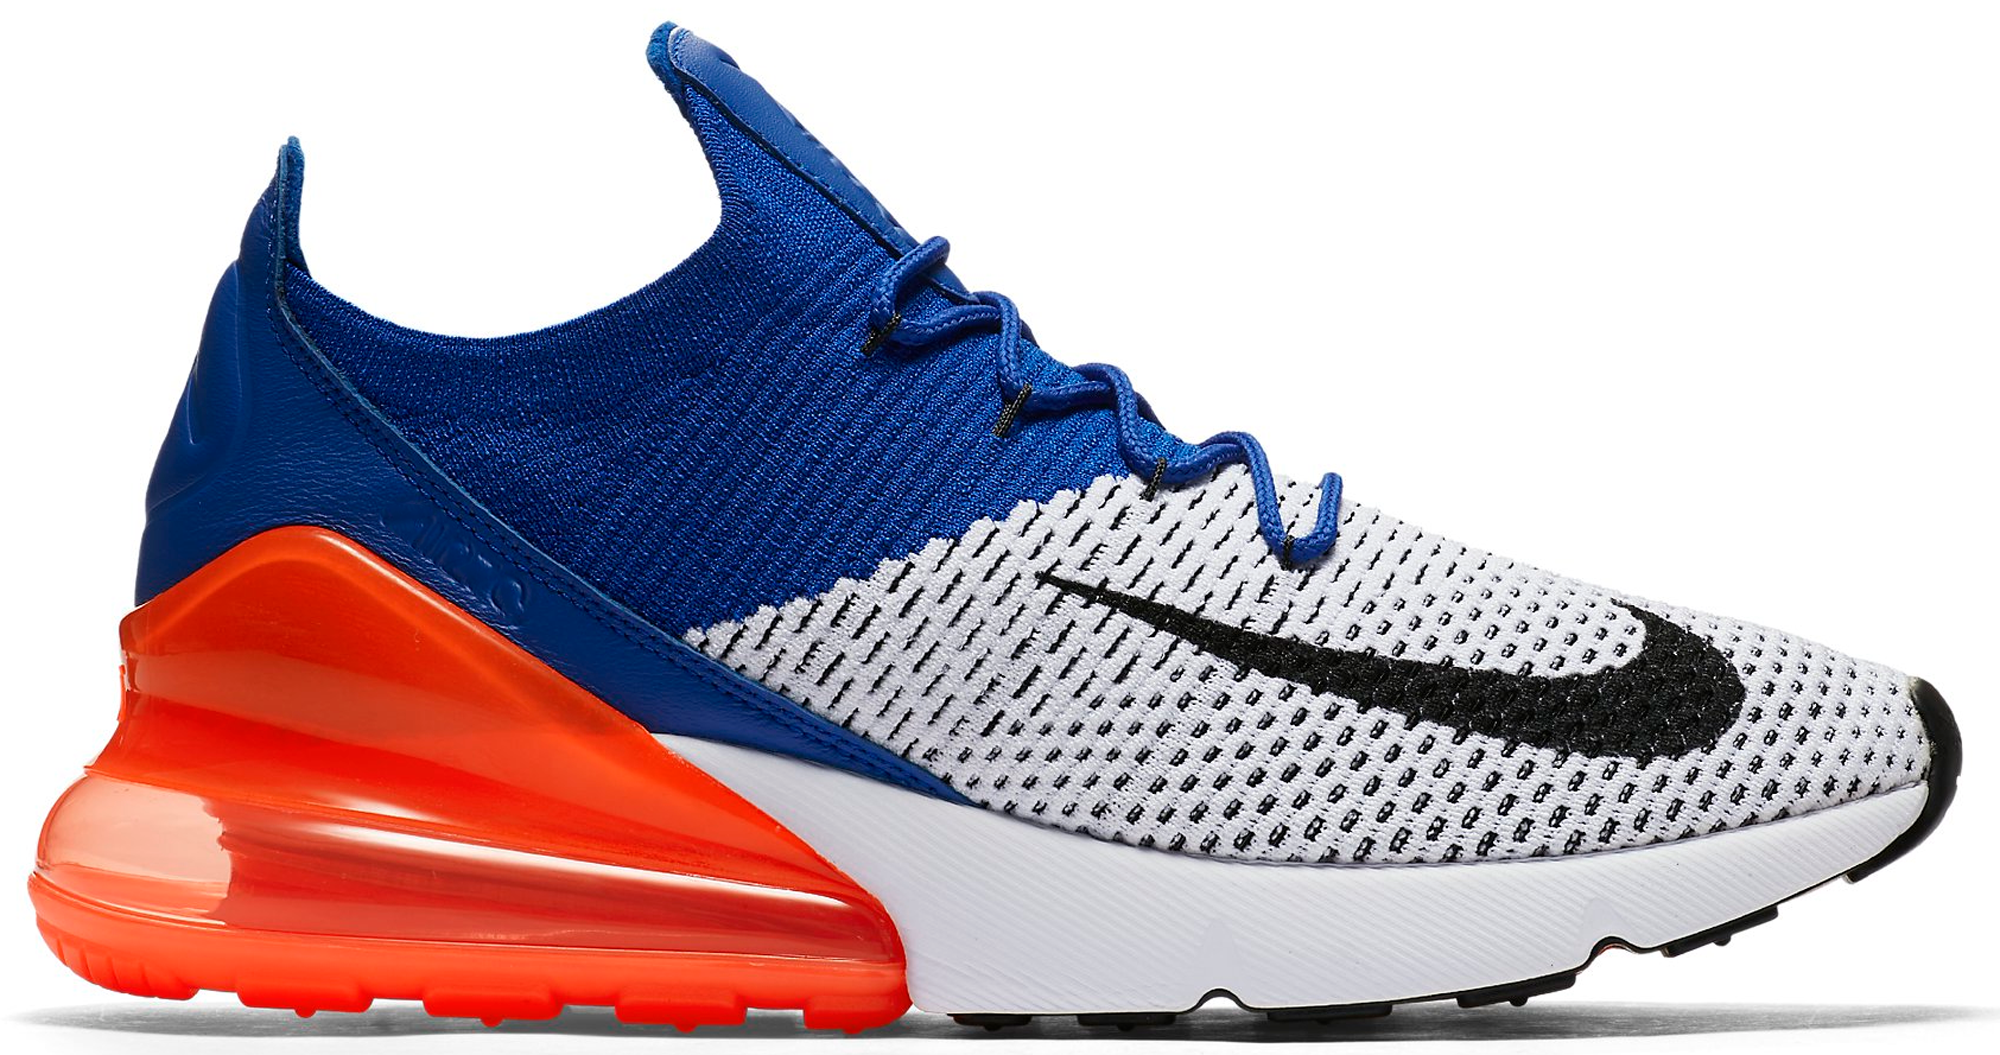 Air Max 270 Flyknit Racer Blue Total Crimson